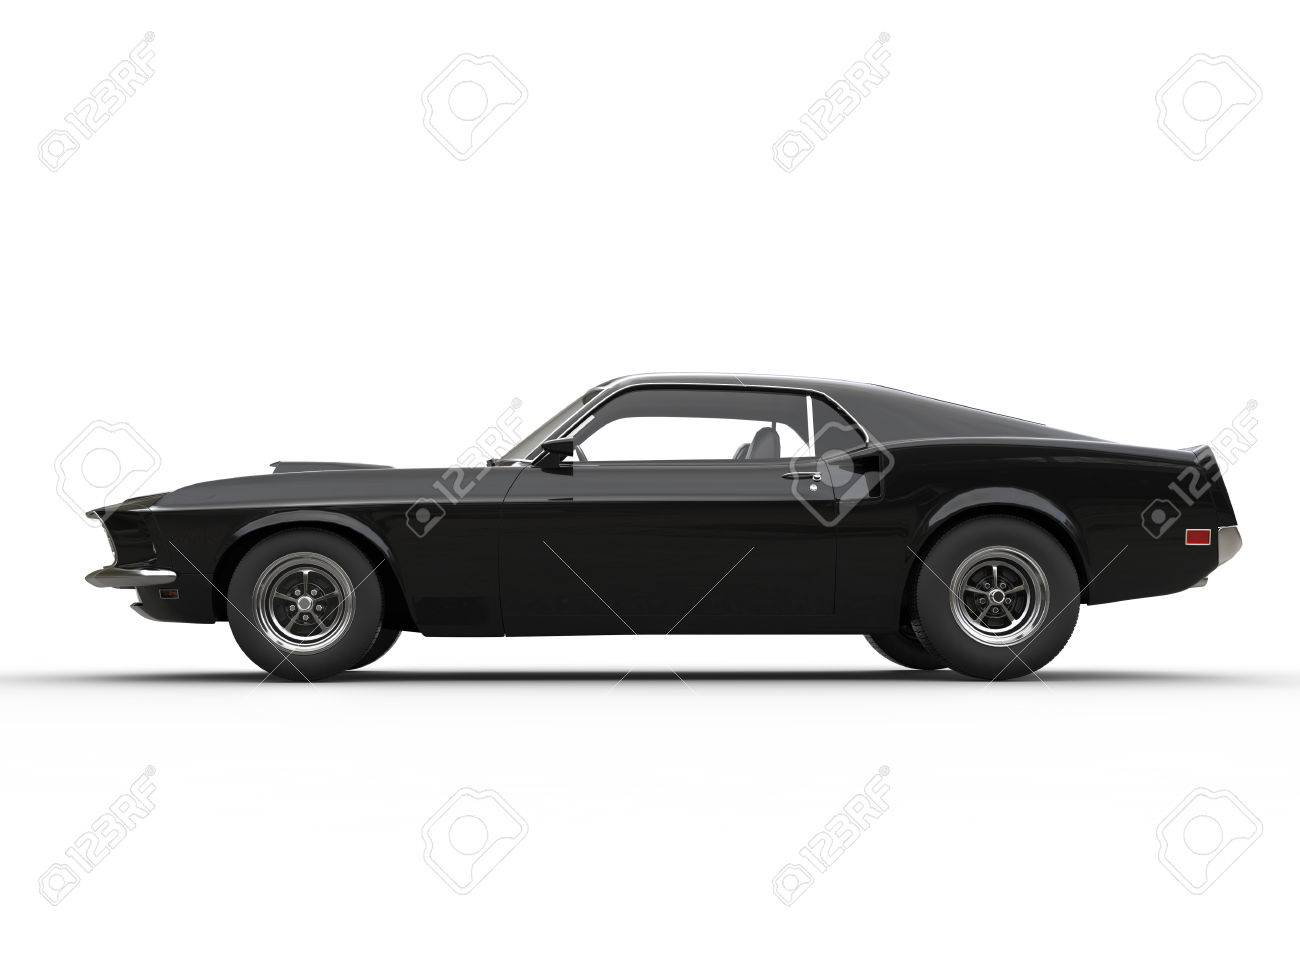 Awesome Black Muscle Car Side View Stock Photo Picture And